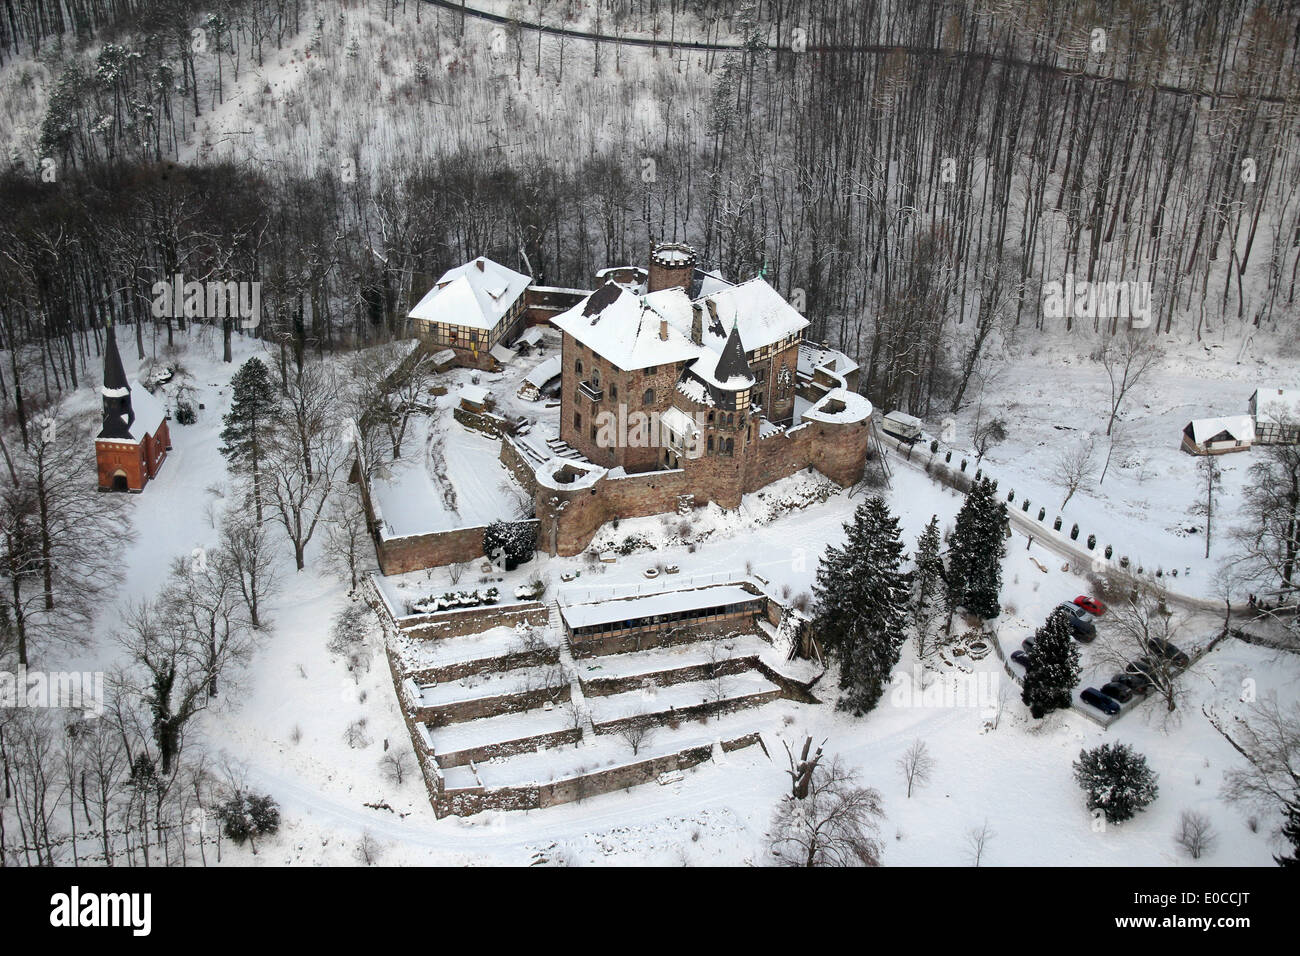 Aerial view of the castle Berlepsch (Hesse, Germany), picture taken at 26.01.2013 from a light aircraft. Stock Photo